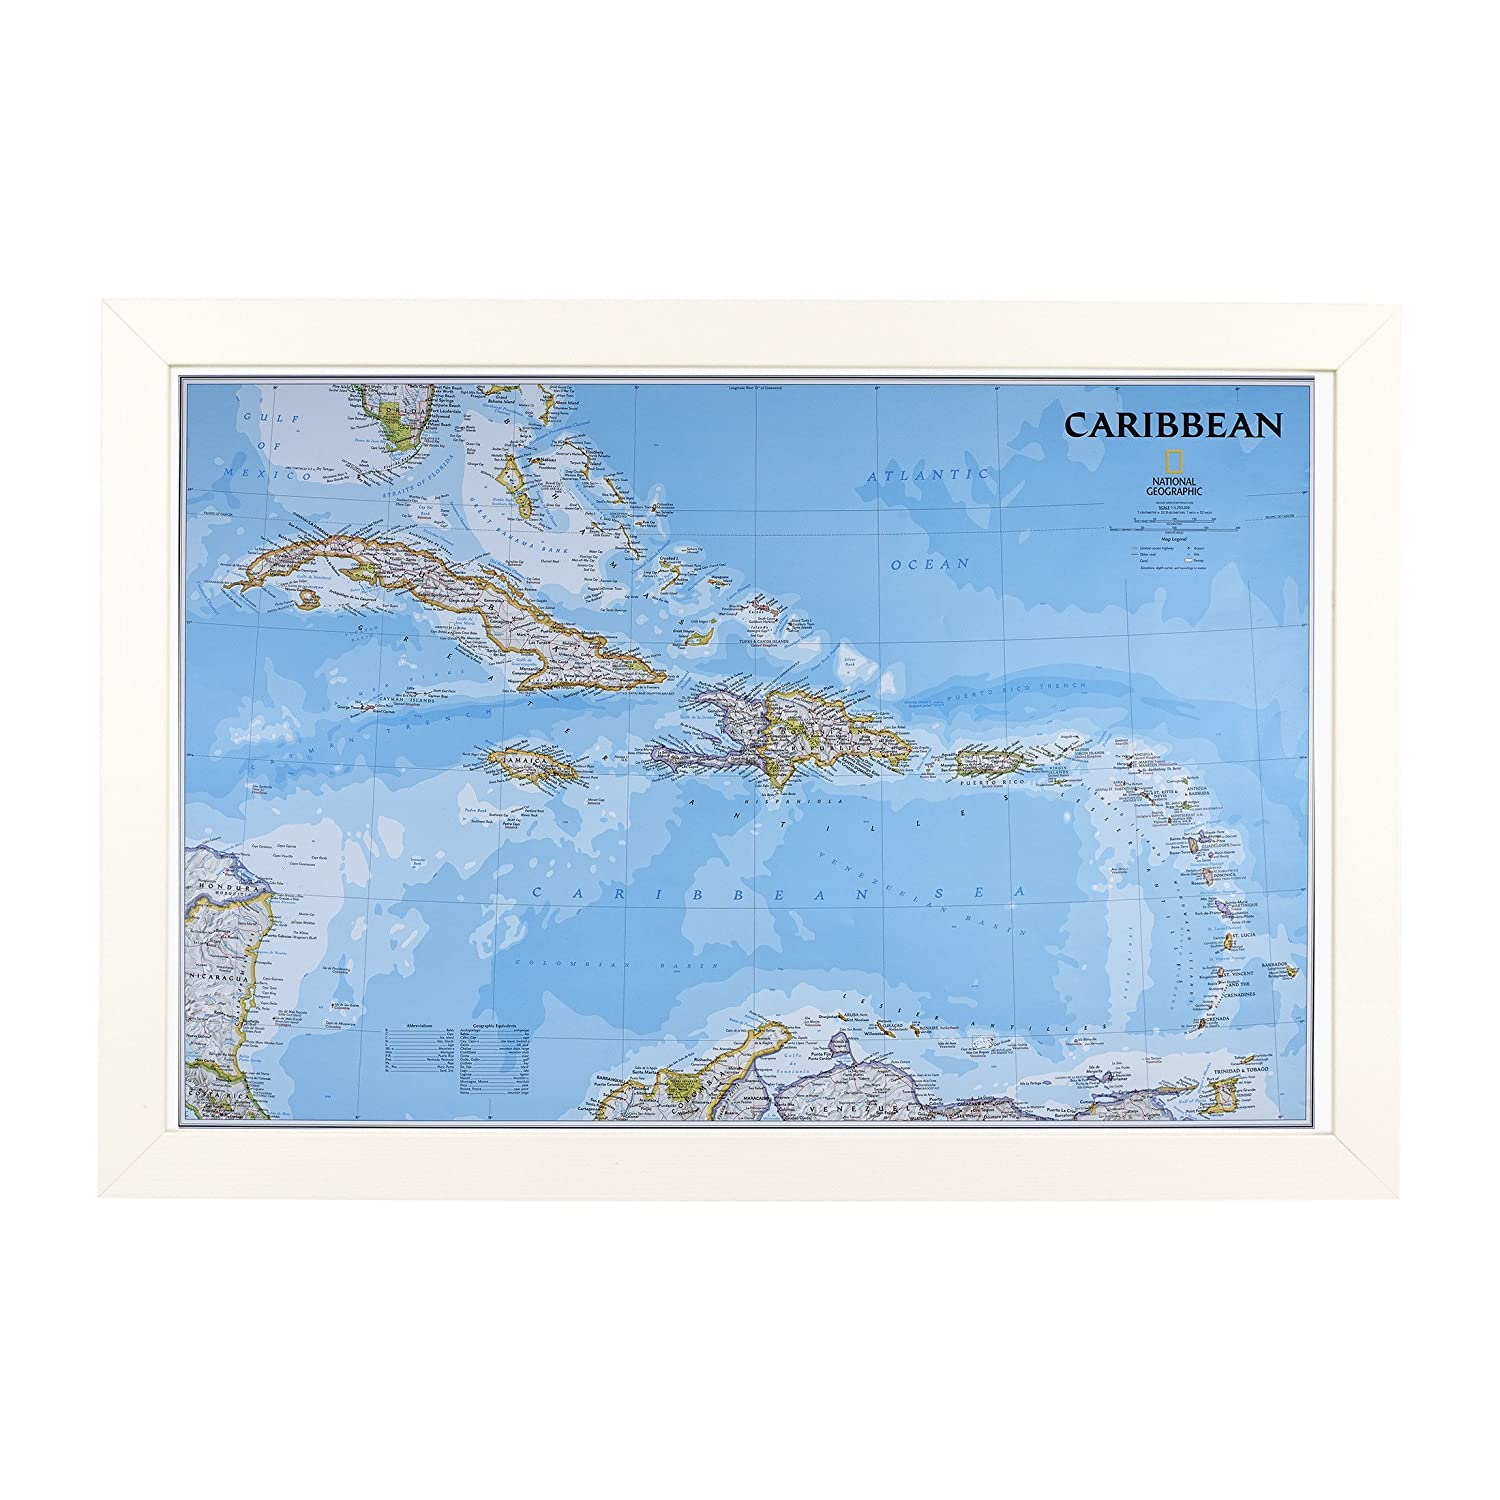 Amazon.com: Push Pin Travel Maps Classic Caribbean with Textured White Frame and Pins 24 x 36: Posters & Prints